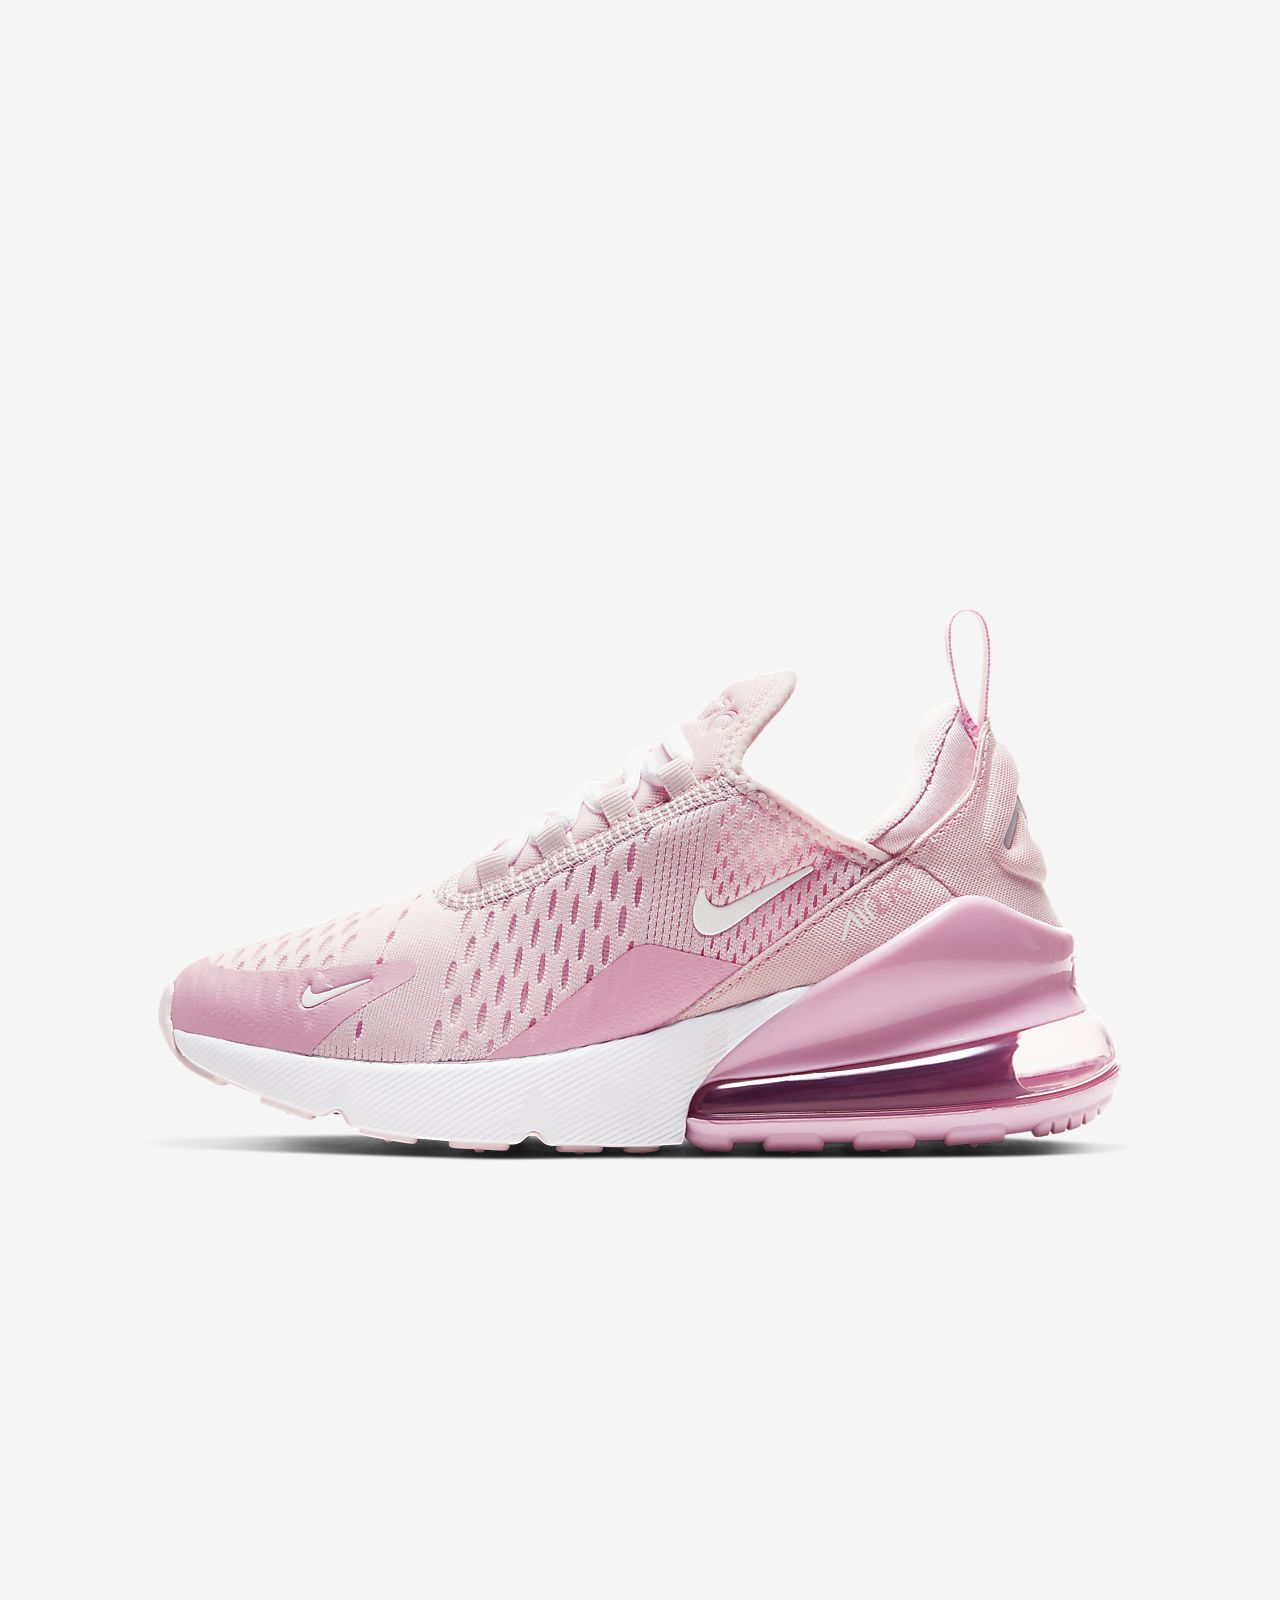 air max 270 nike herrenscguh